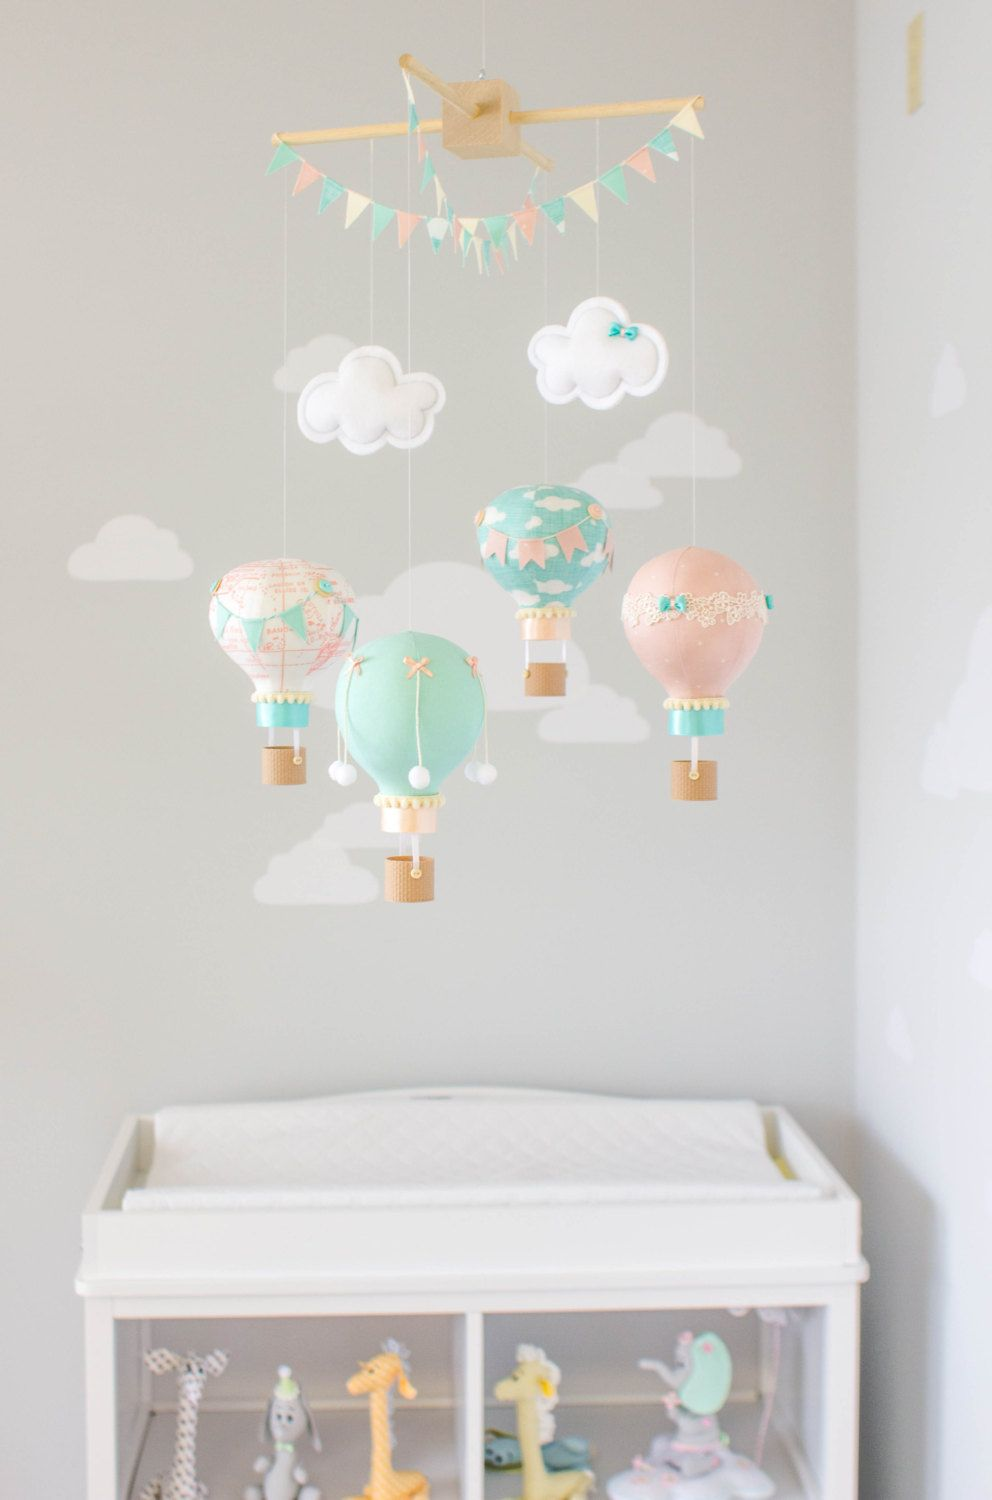 Hot Air Balloon Baby Mobile Travel Theme Nursery Decor Nursery Mobile Blush Pink Teal And Ivo Travel Theme Nursery Nursery Themes Hot Air Balloon Nursery